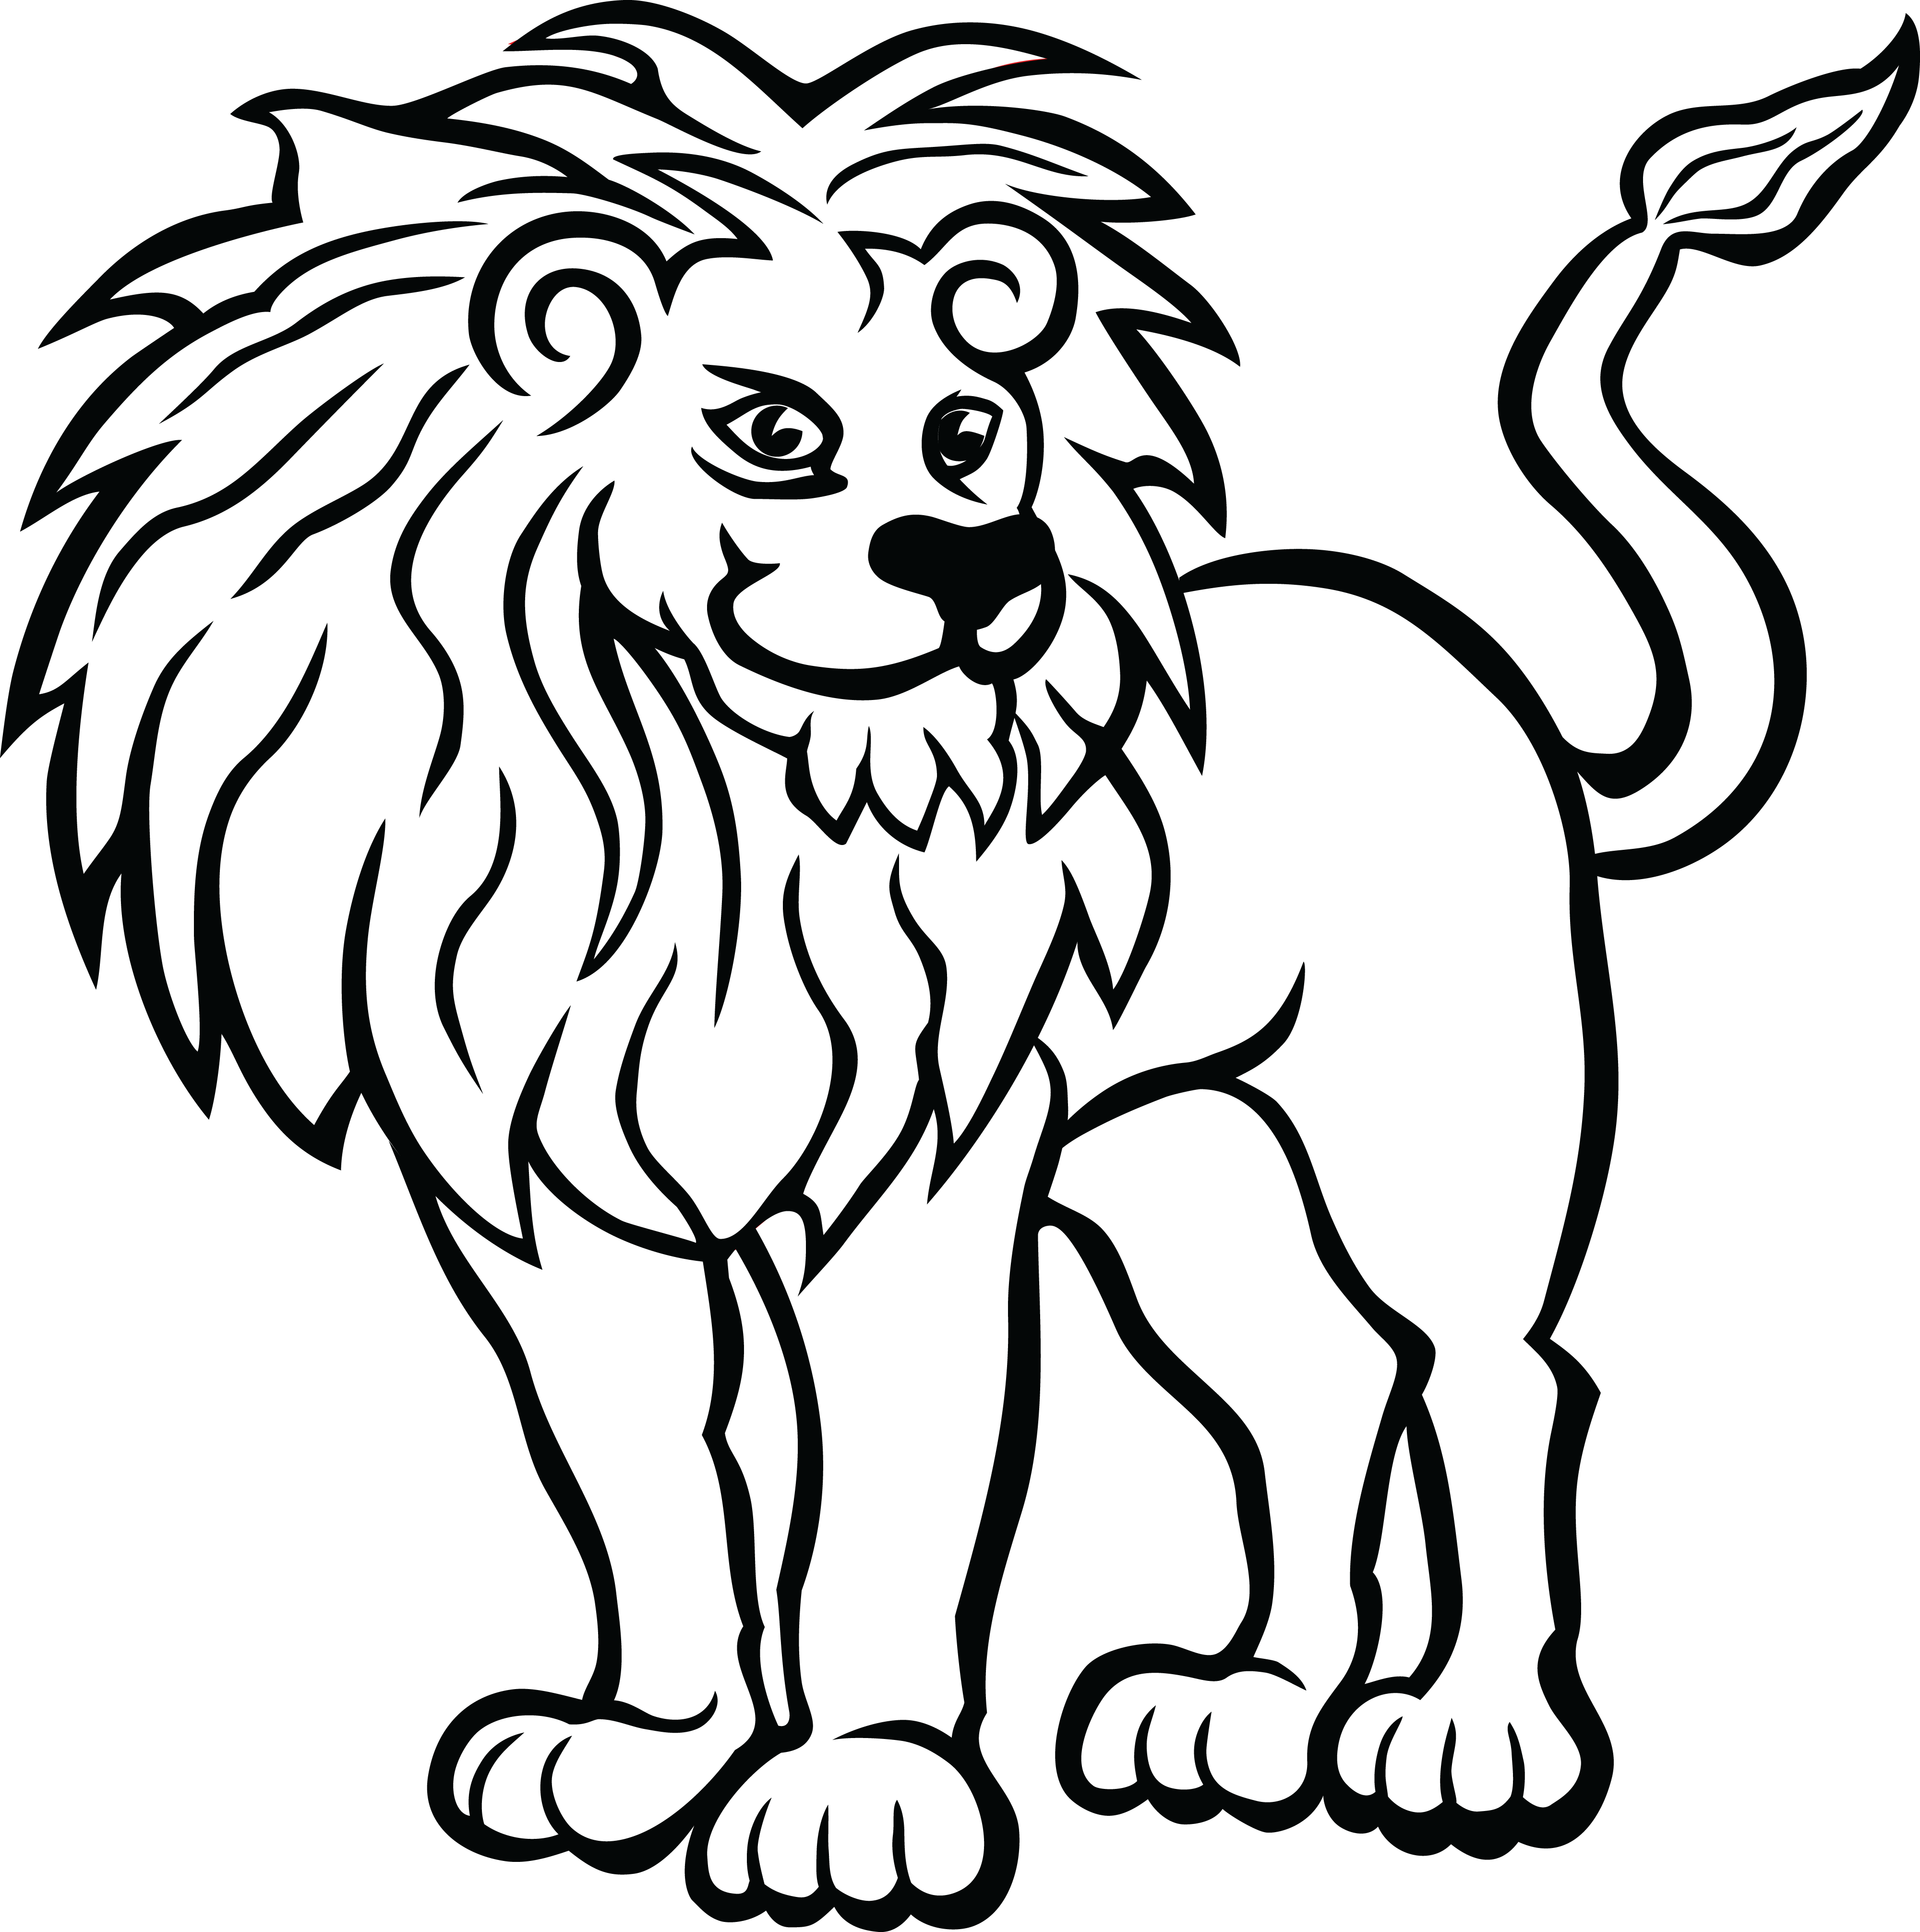 4000x4024 Circus Lion Png Black And White Free Circus Lion Black And White